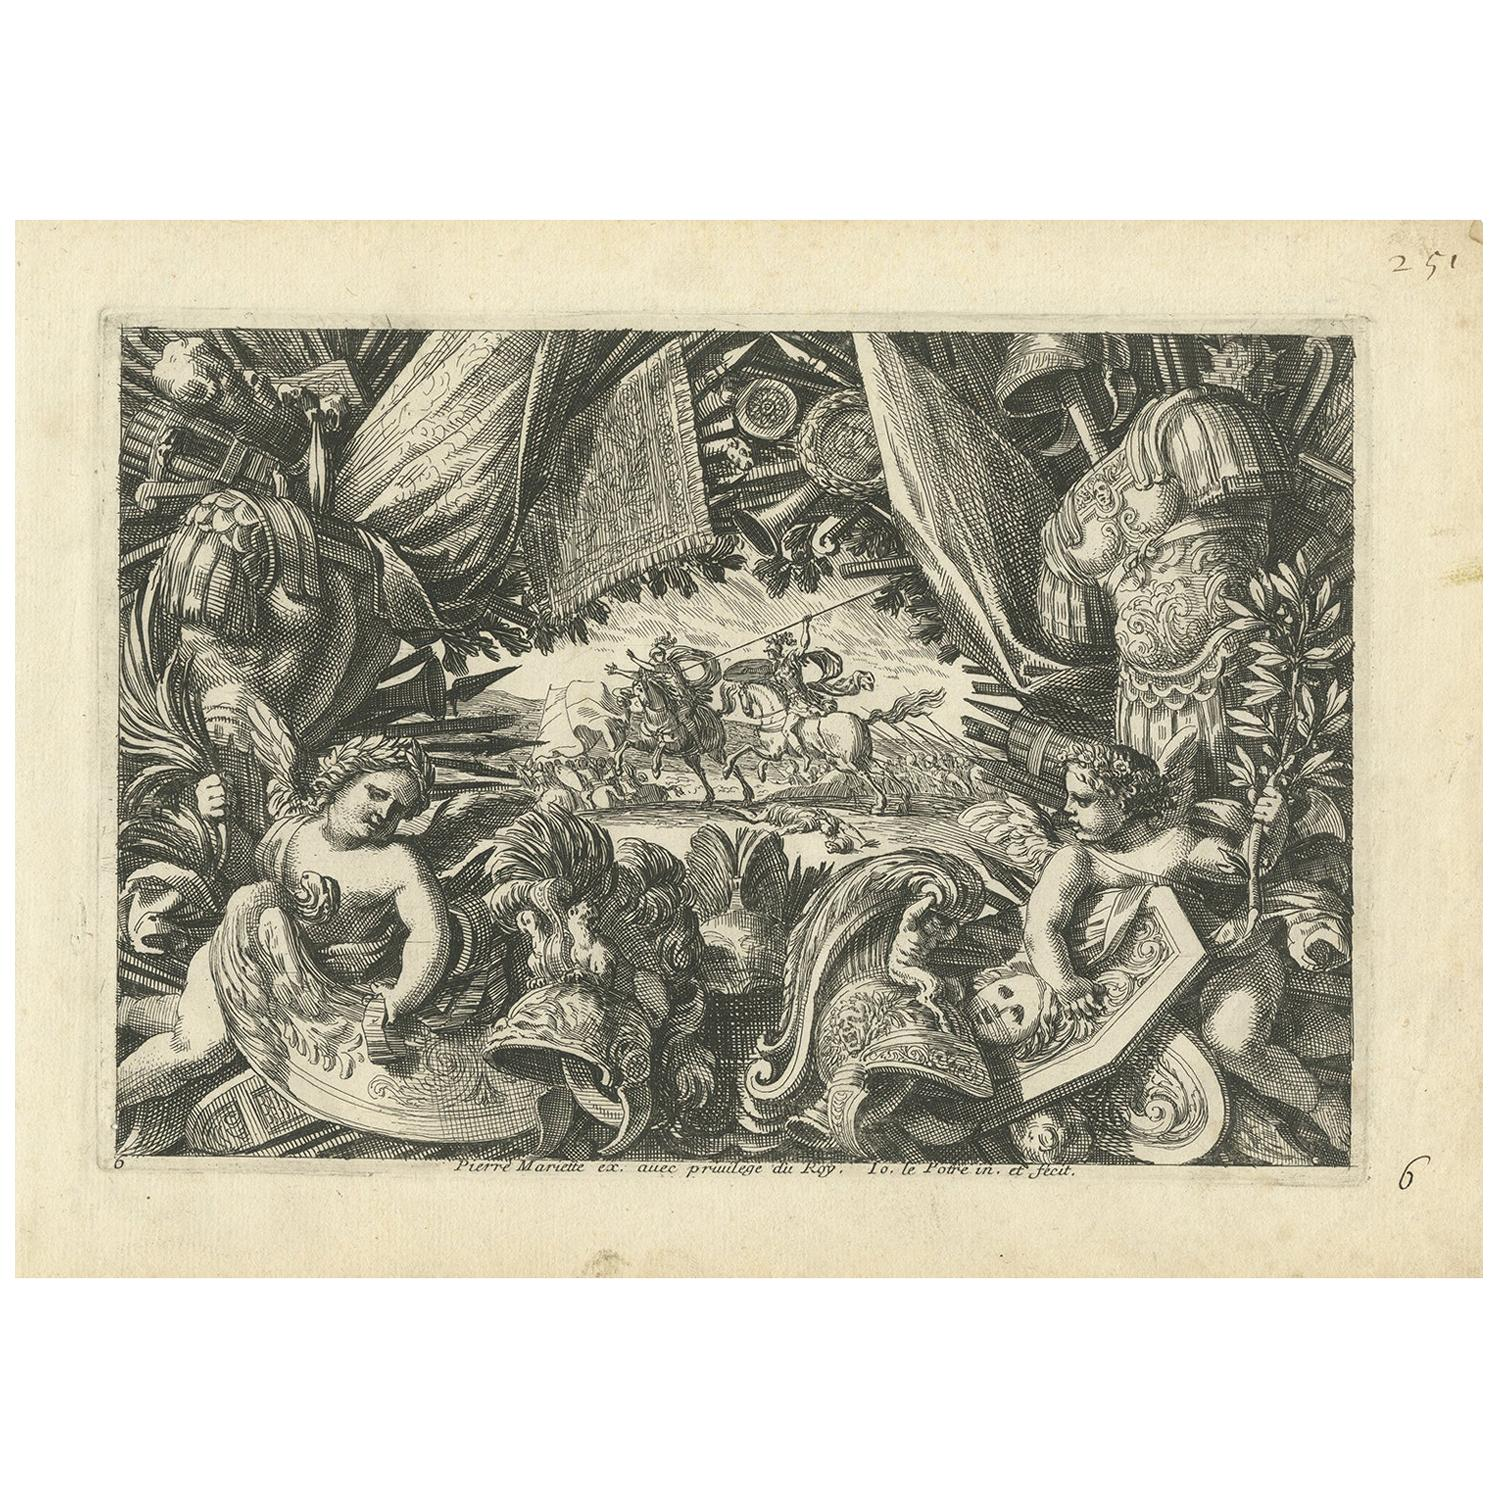 Antique Print of a Trophy of Arms by Lepautre, circa 1650